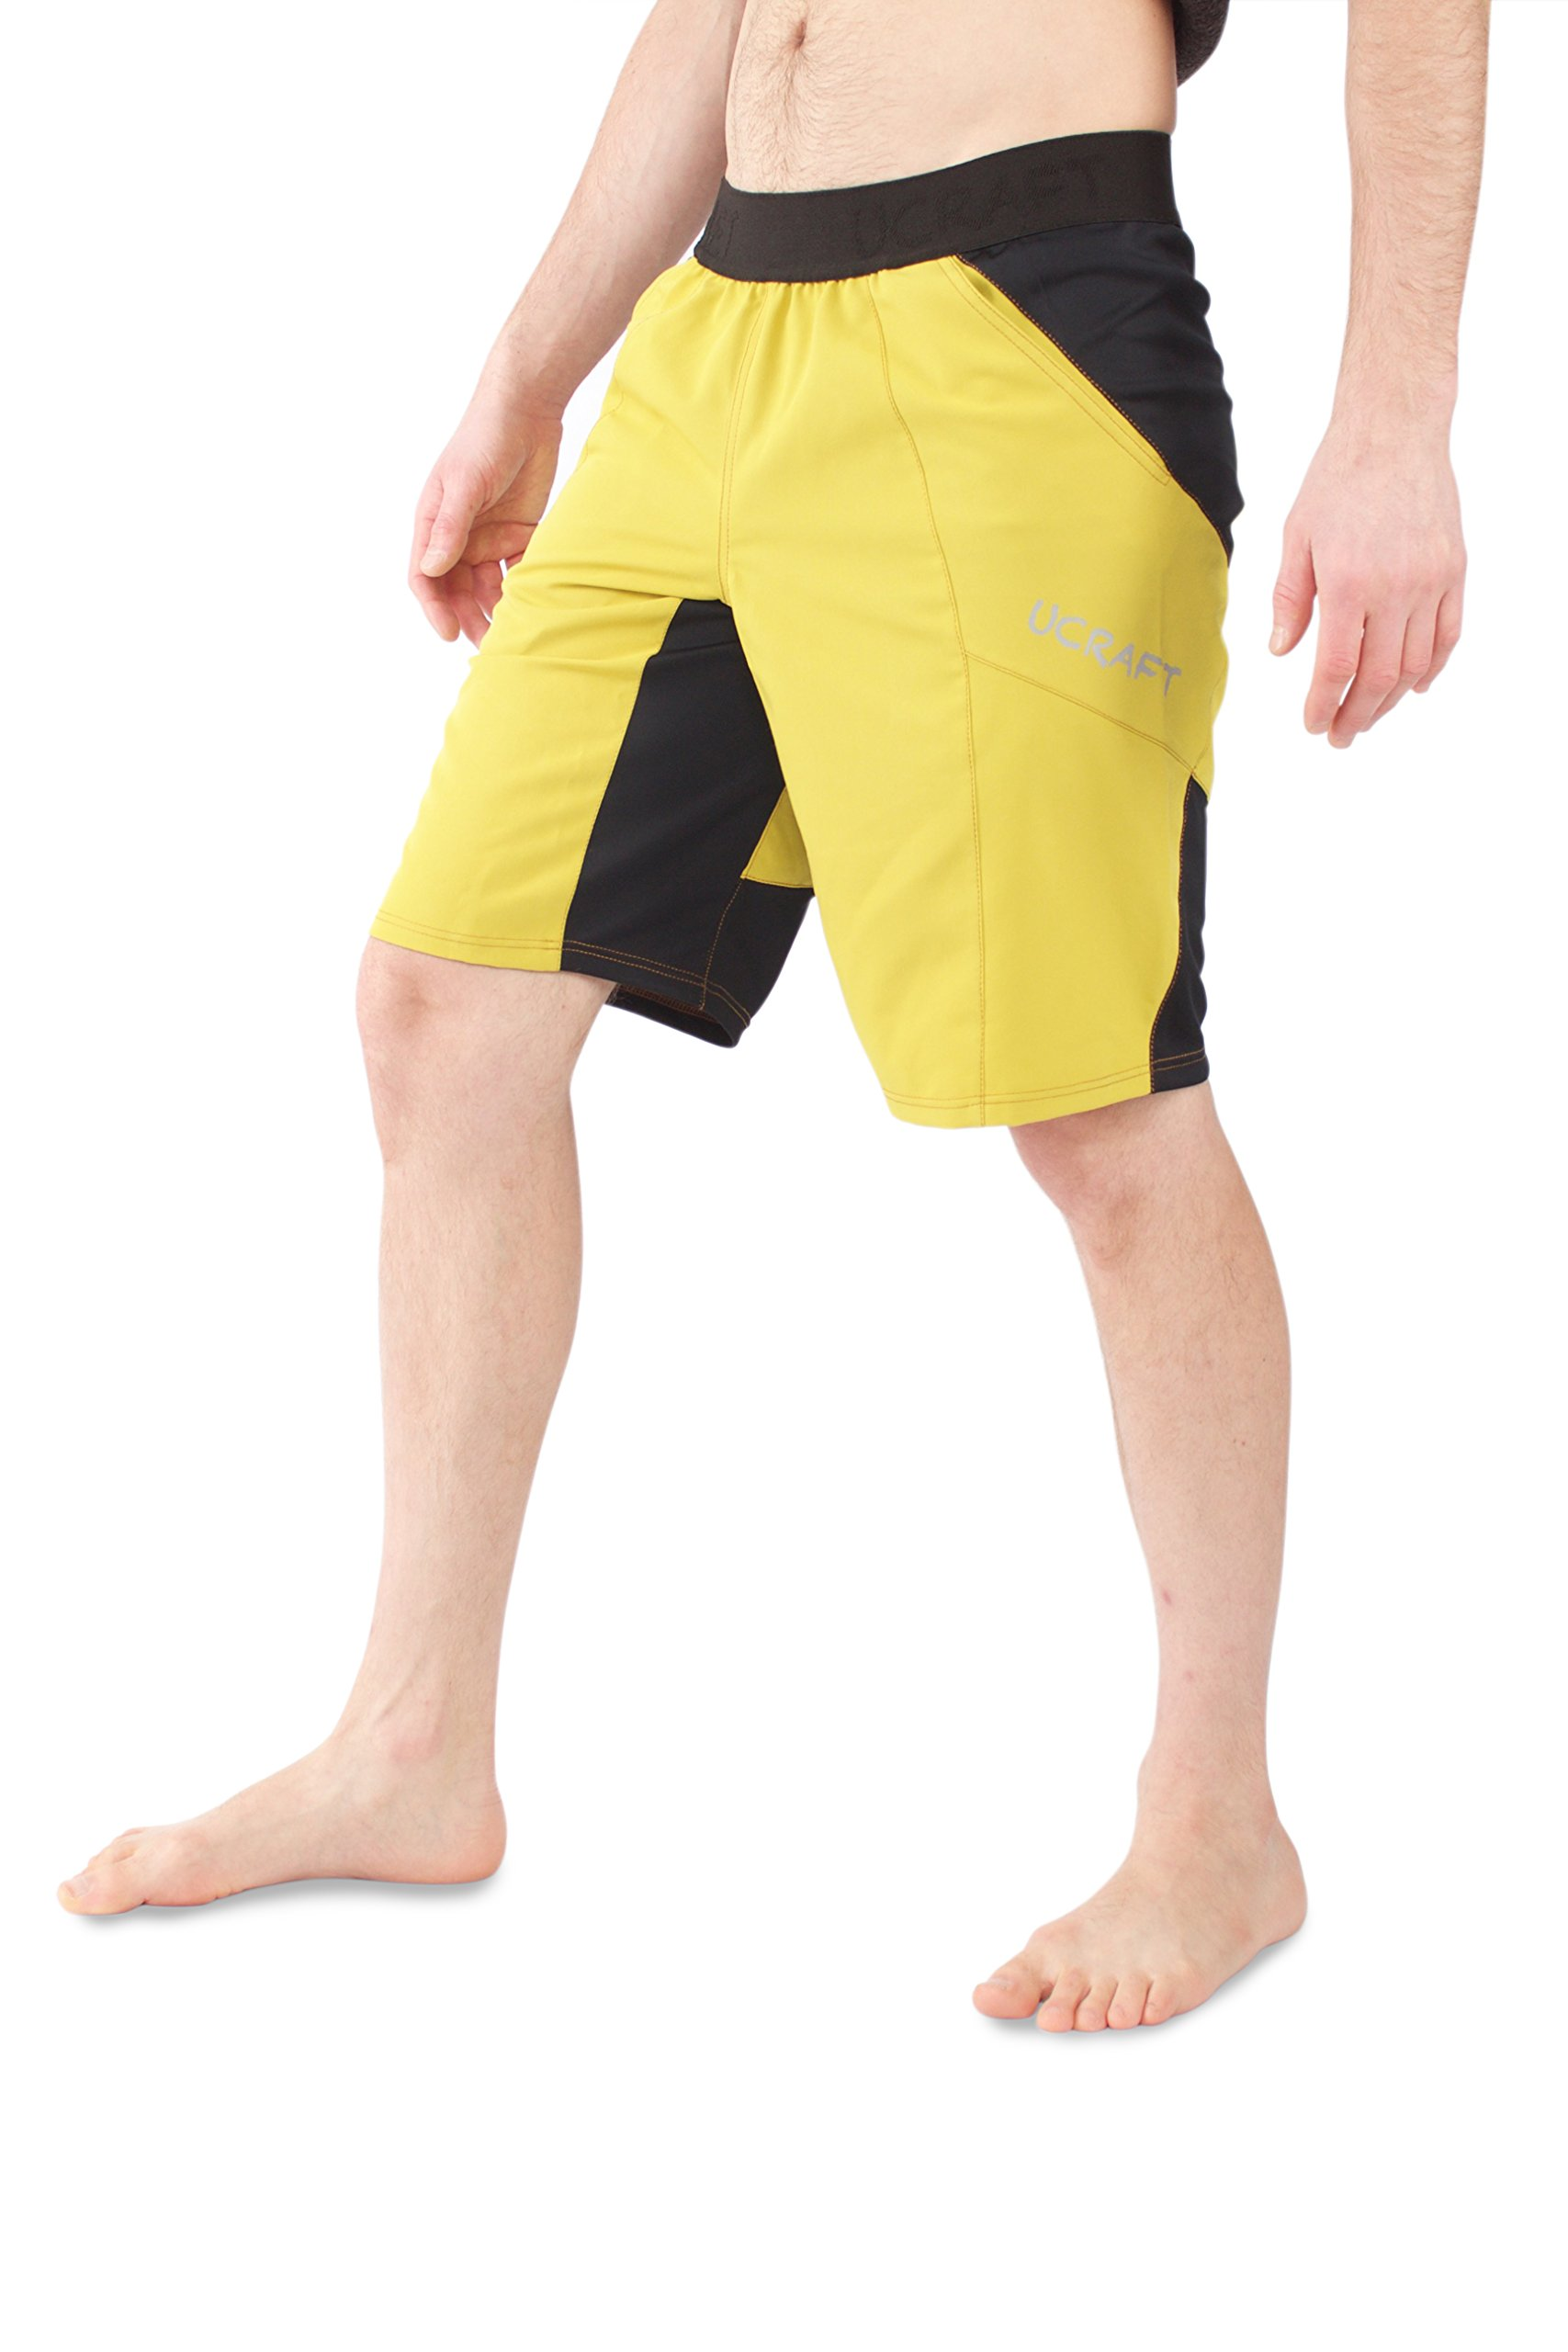 Ucraft Climbing Anti-Gravity Shorts. Stretchy, Lightweight and Breathable Multisport Shorts. (Yellow, M) by Ucraft